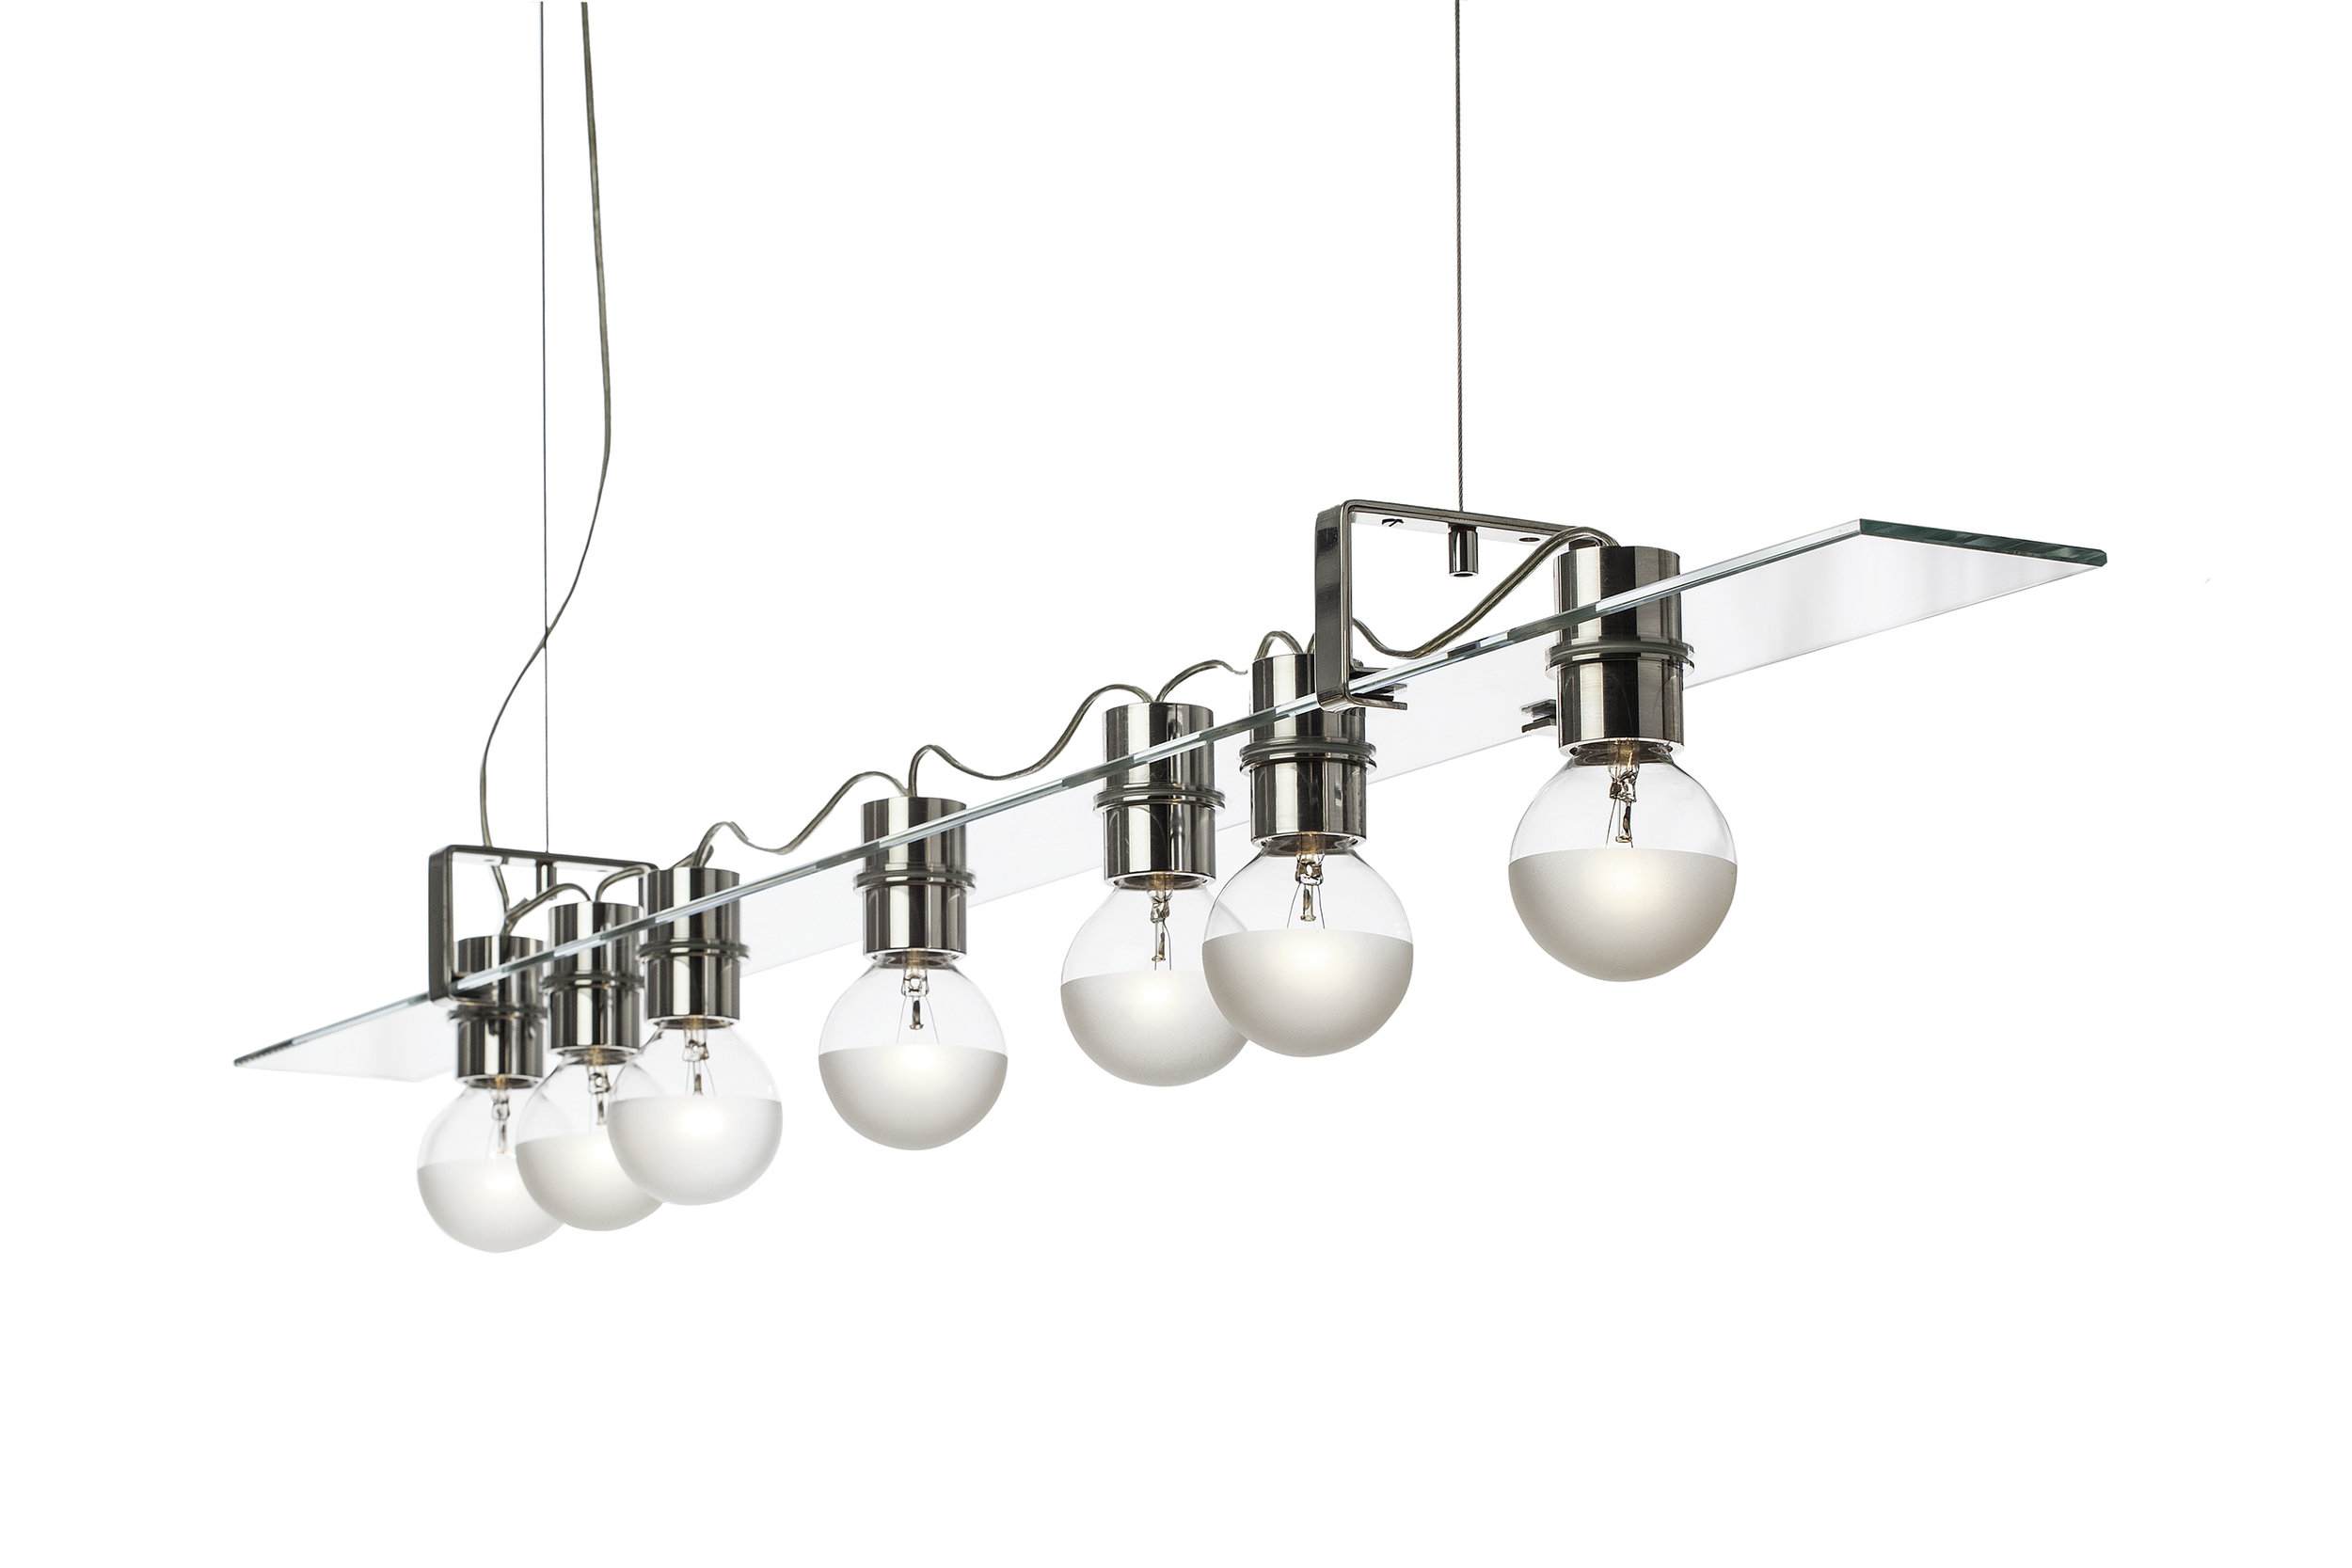 Avram_Rusu_Float_Chandelier_2.jpg